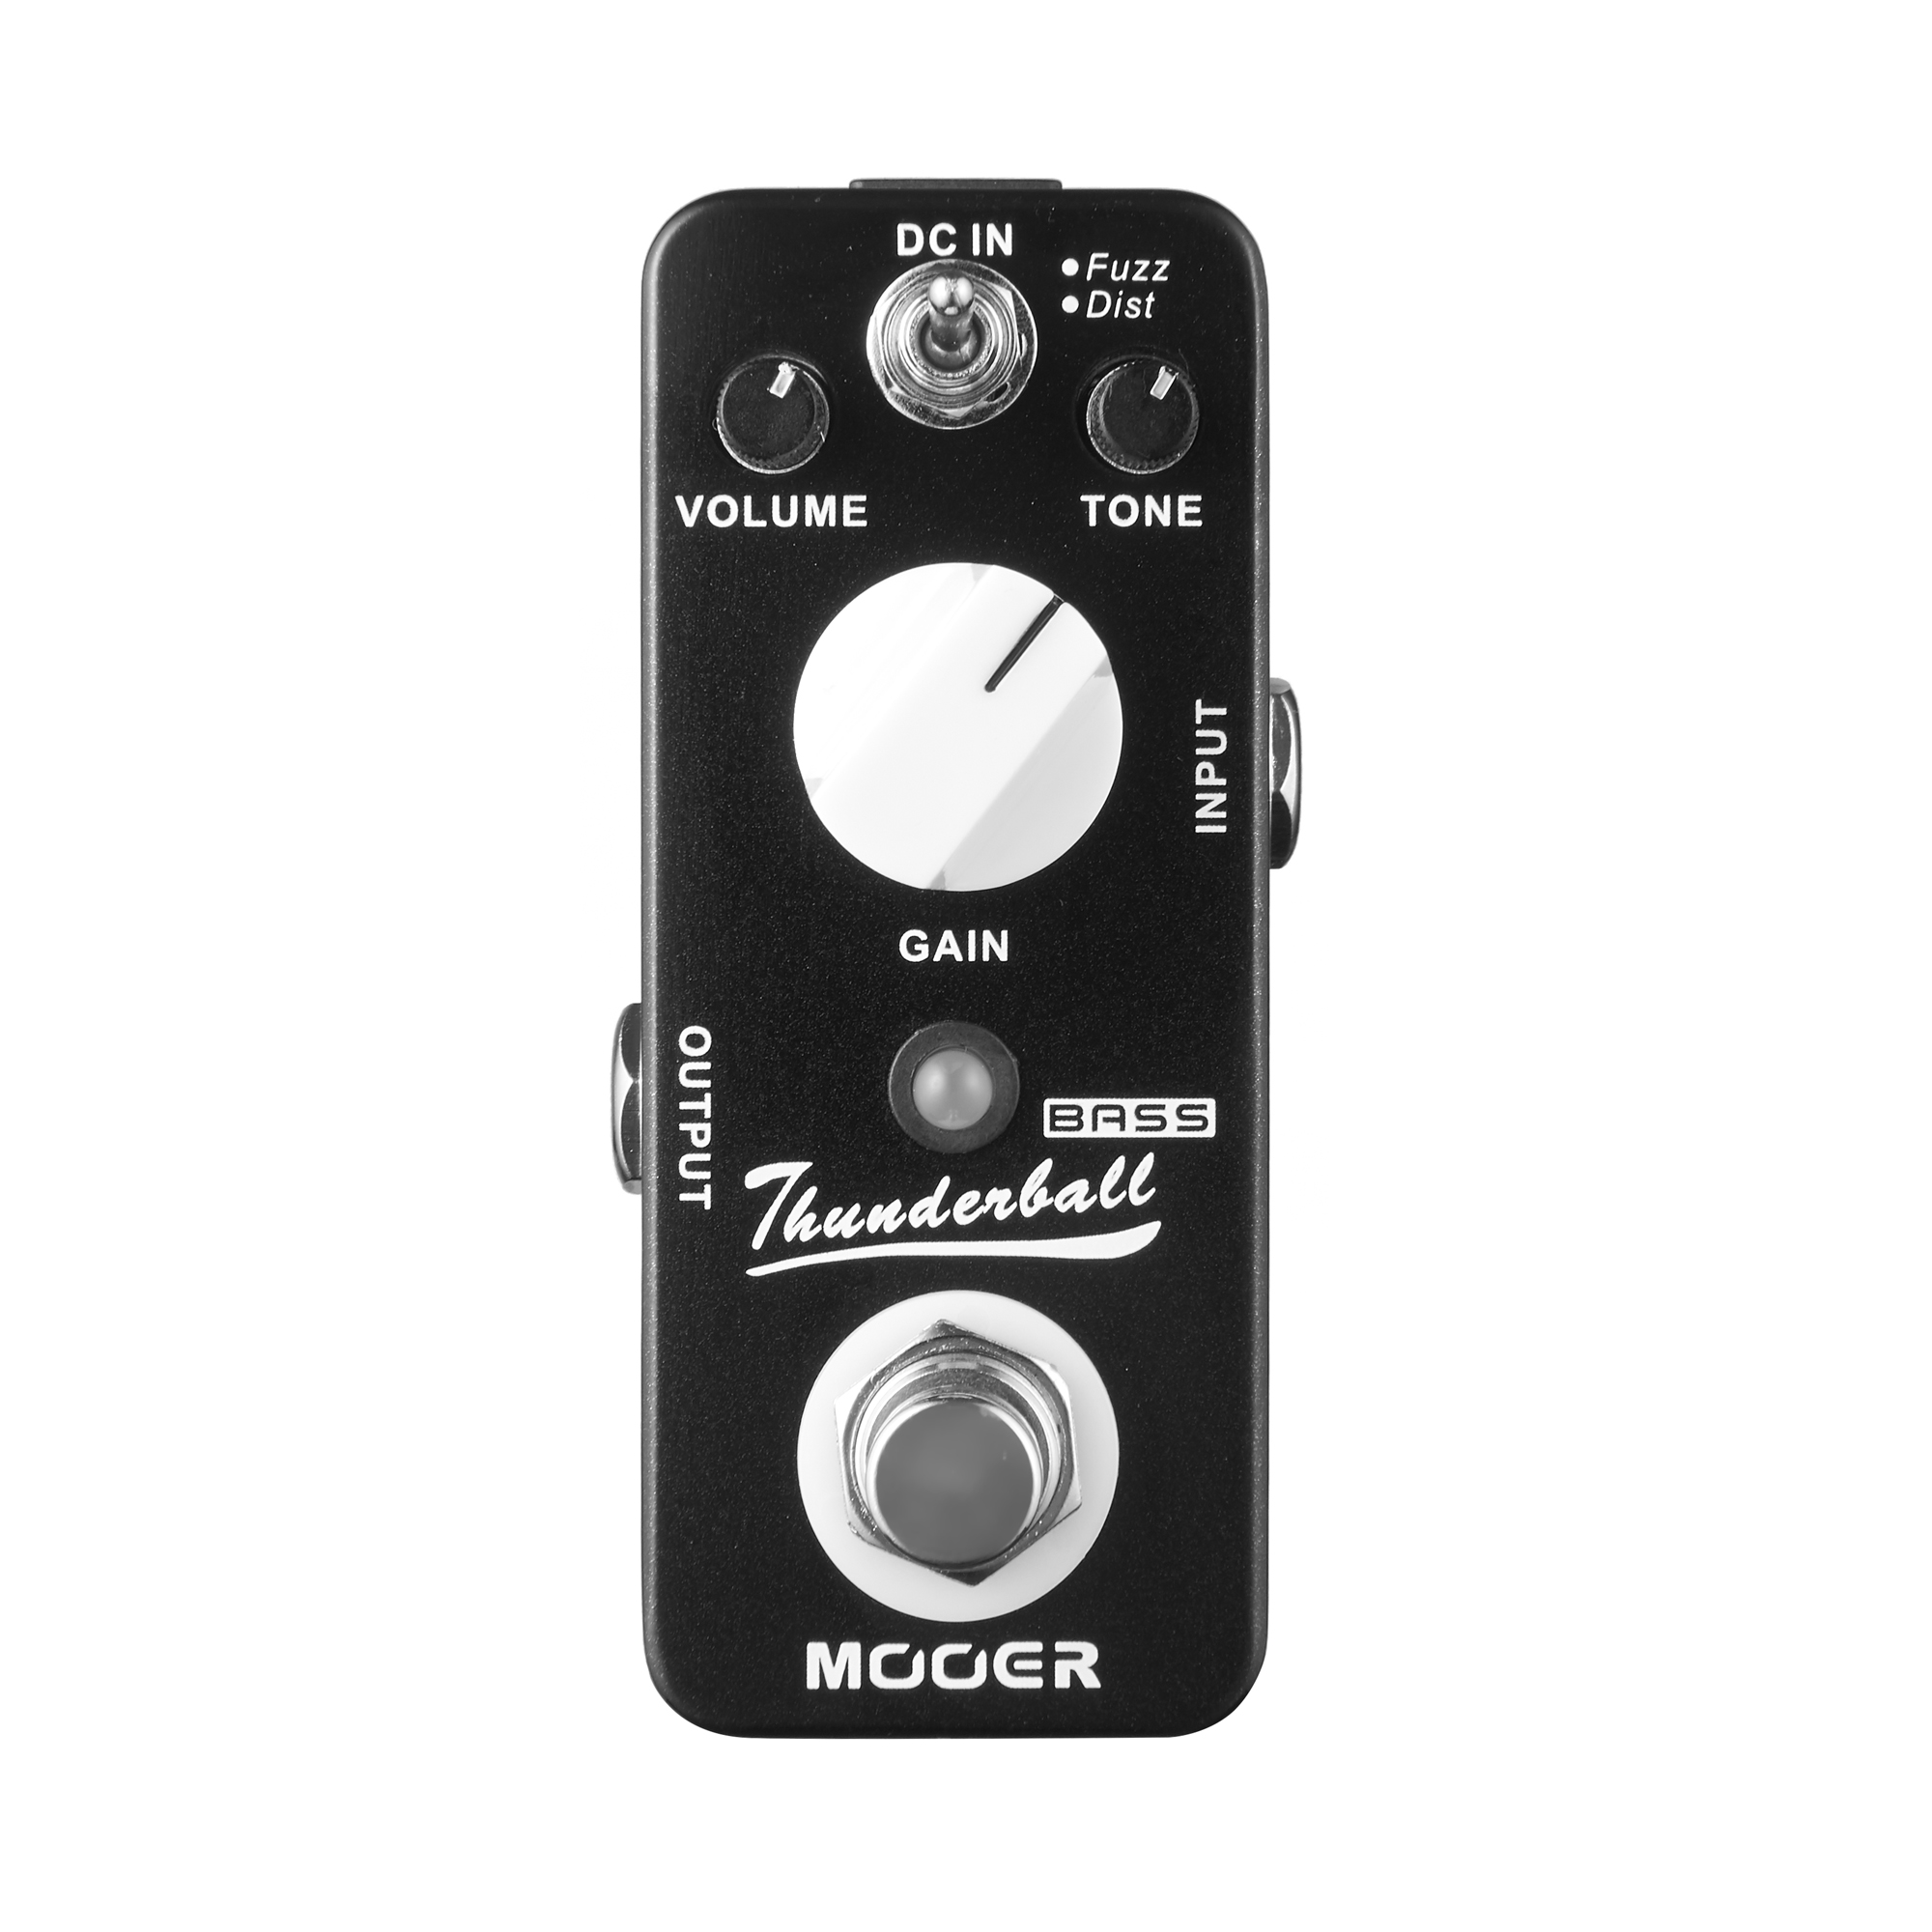 Mooer Thunderball Bass Fuzz Electric Guitar Effect Pedal Fuzz and Dist Modes True Bypass MOD3 mooer ensemble queen bass chorus effect pedal mini guitar effects true bypass with free connector and footswitch topper